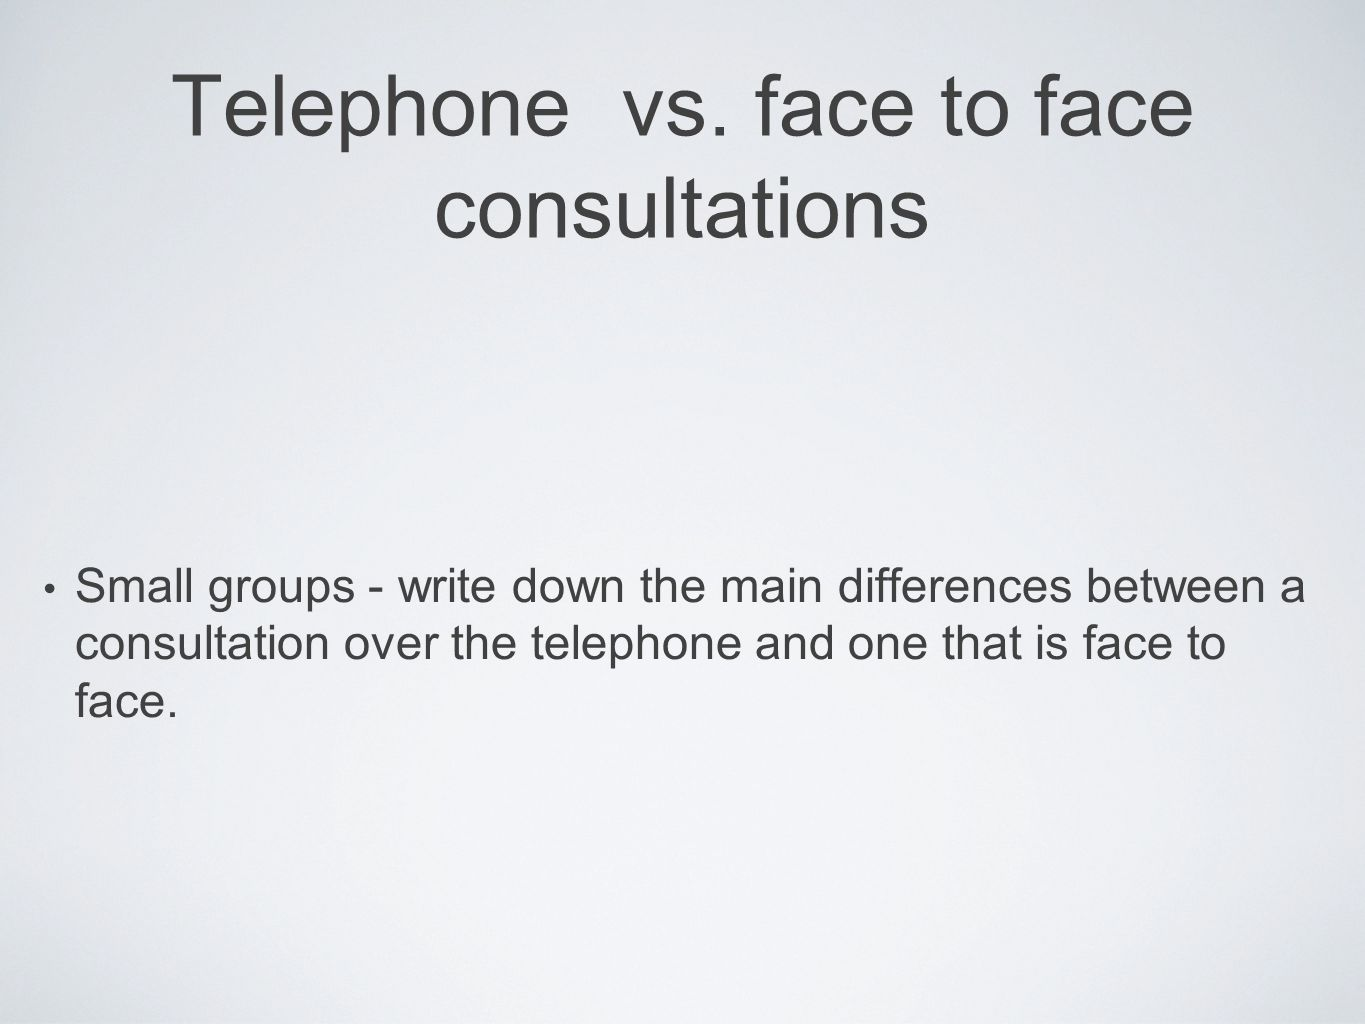 Telephone vs. face to face consultations Small groups - write down the main differences between a consultation over the telephone and one that is face